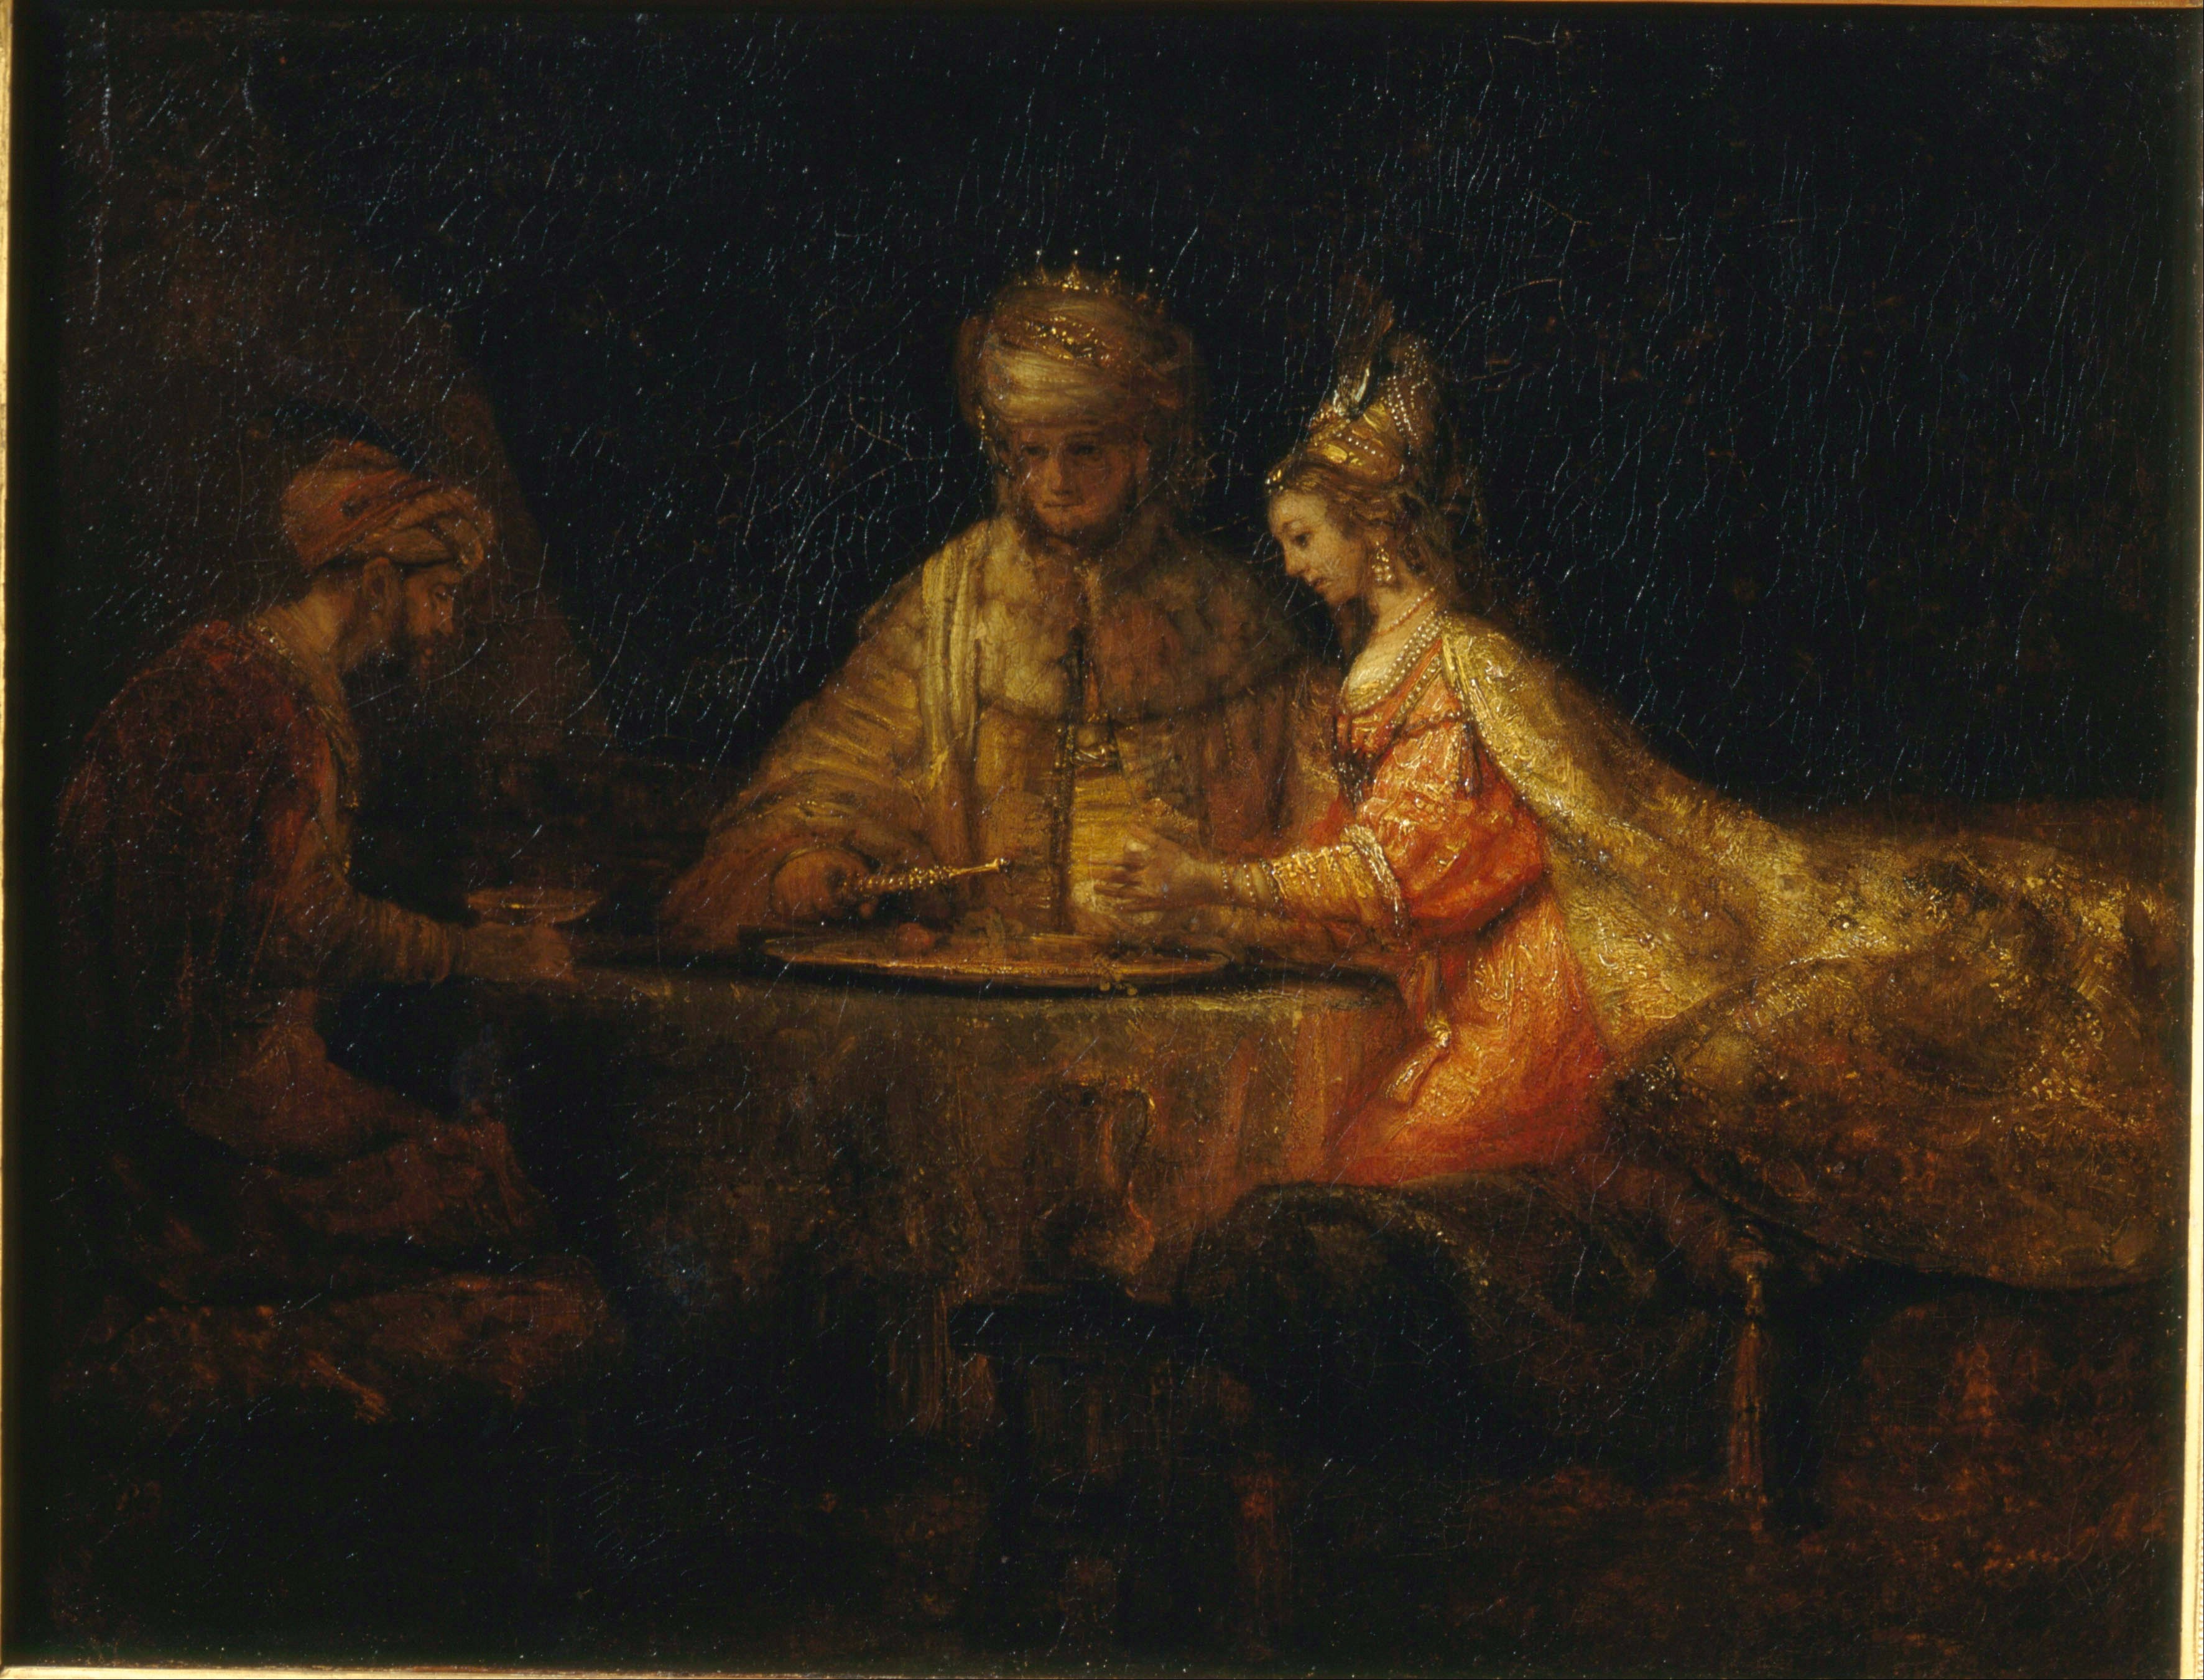 Rembrandt_Harmensz_van_Rijn_-_Ahasuerus,_Haman_and_Esther_-_Google_Art_Project